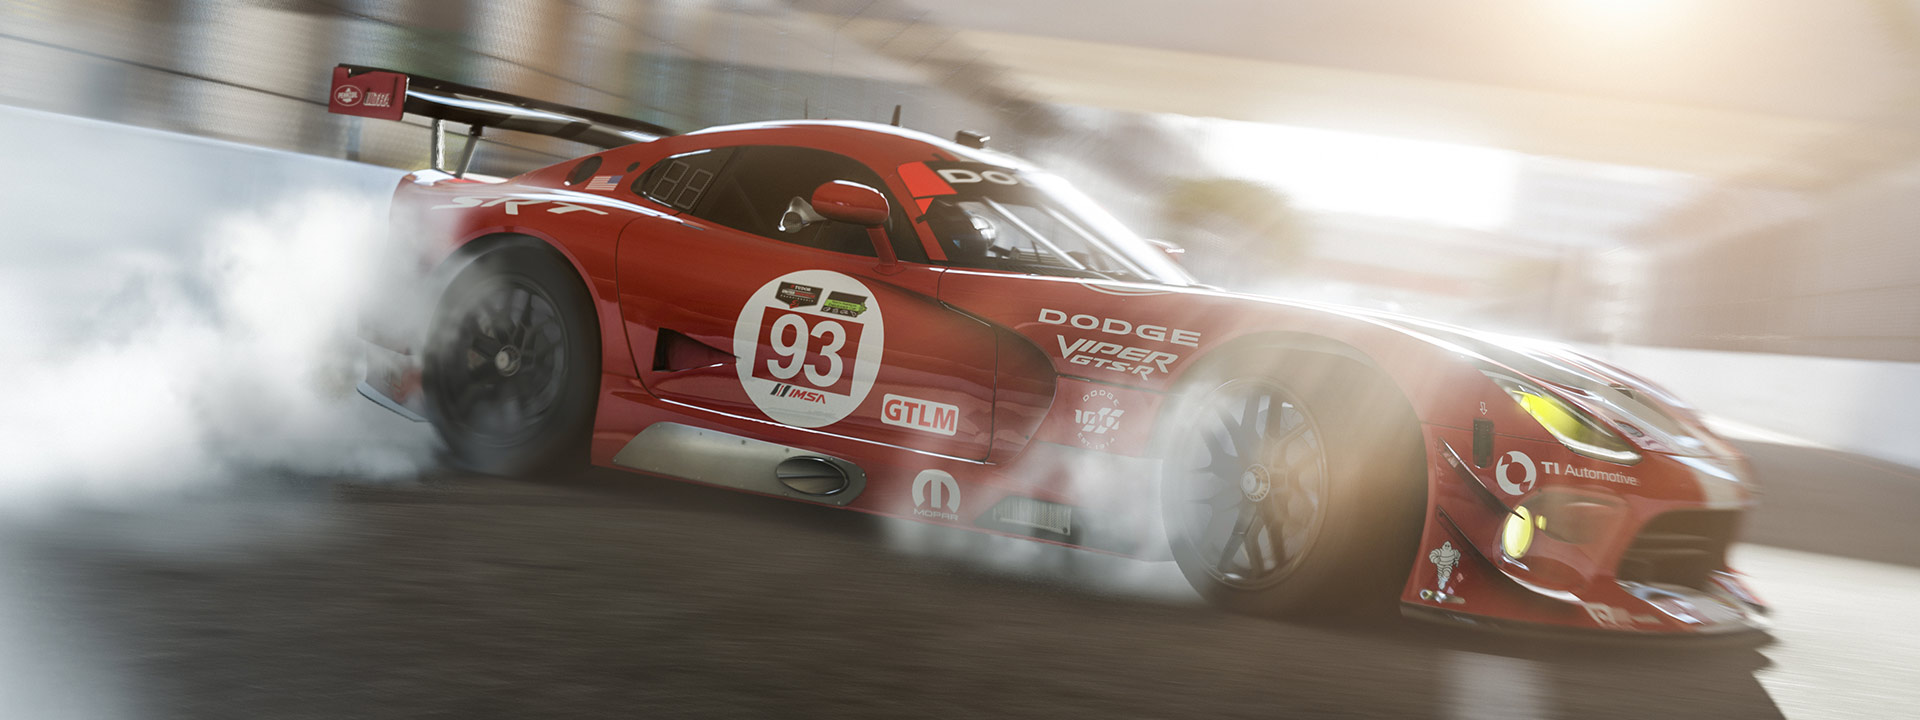 Side view of a red Dodge Viper GTS making smoke by spinning out